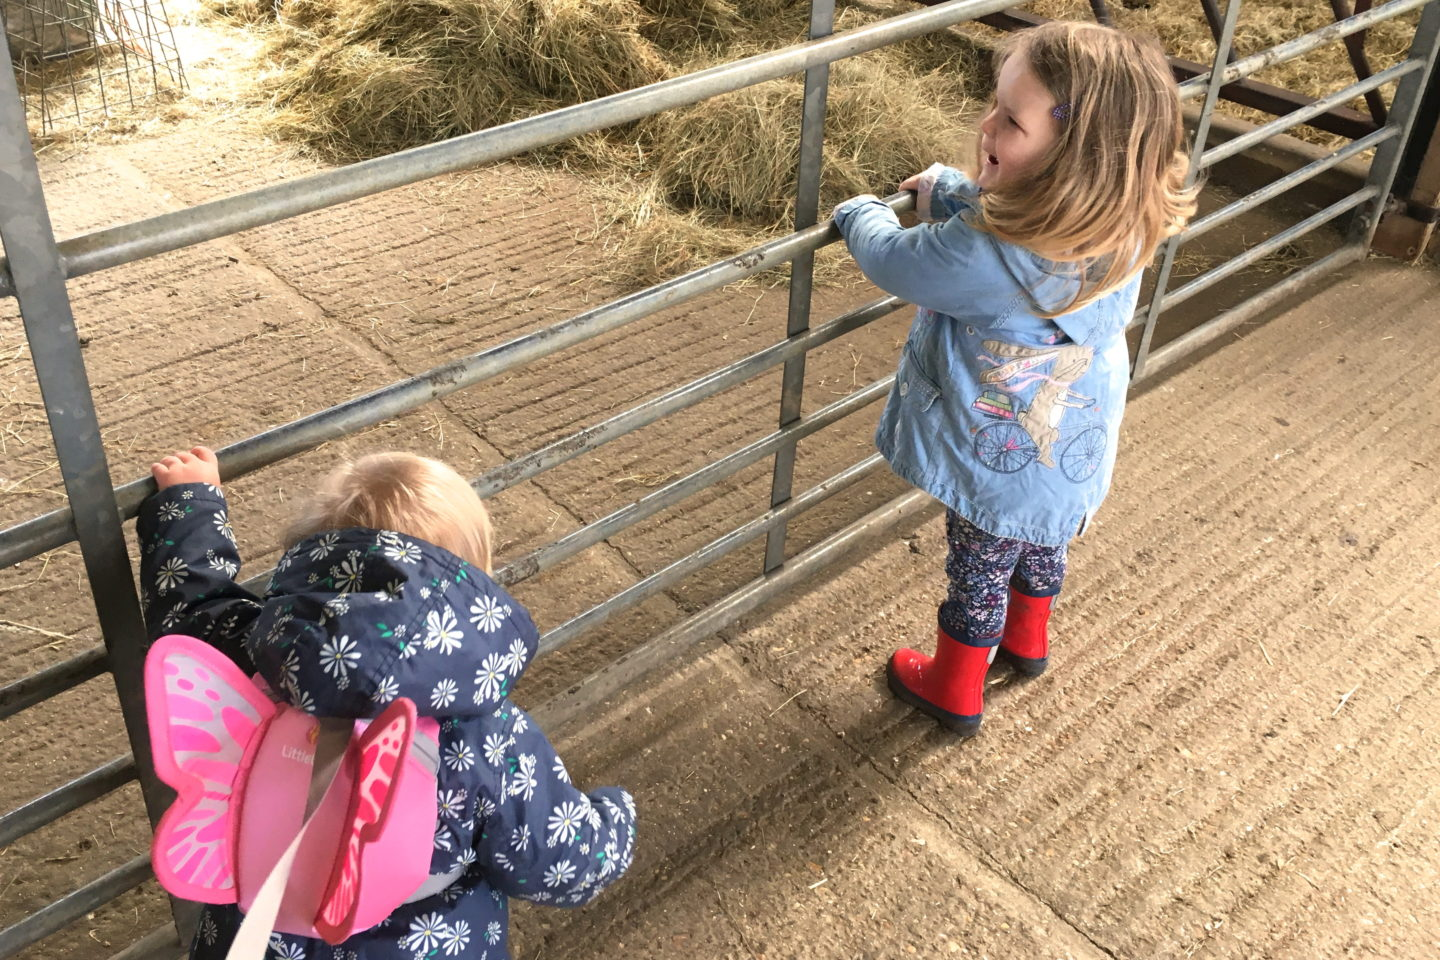 sisters standing together, looking into a farm pen